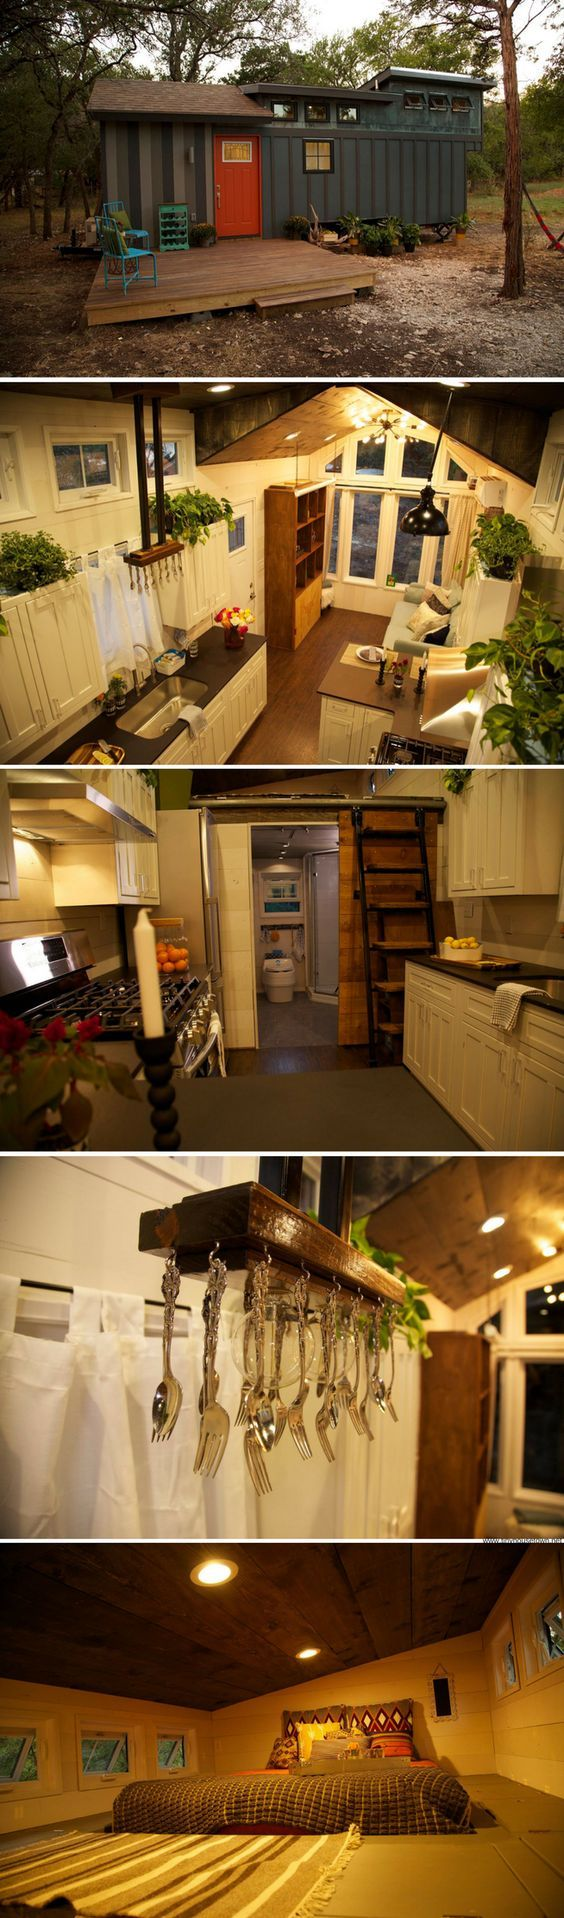 best 25+ tiny house nation ideas on pinterest | mini homes, mini